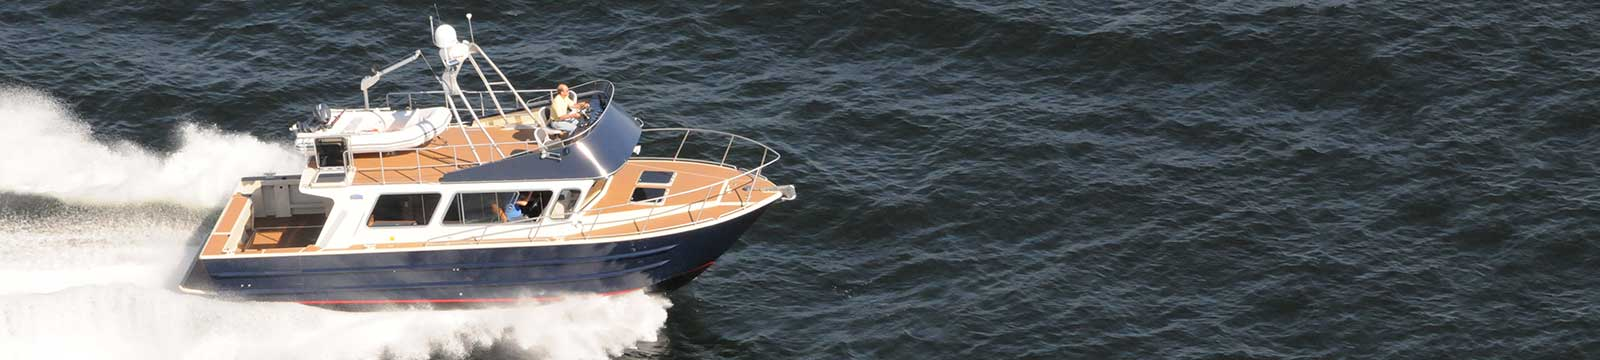 Quality Pre-Owned Boats For Sale – EagleCraft Aluminum Boats